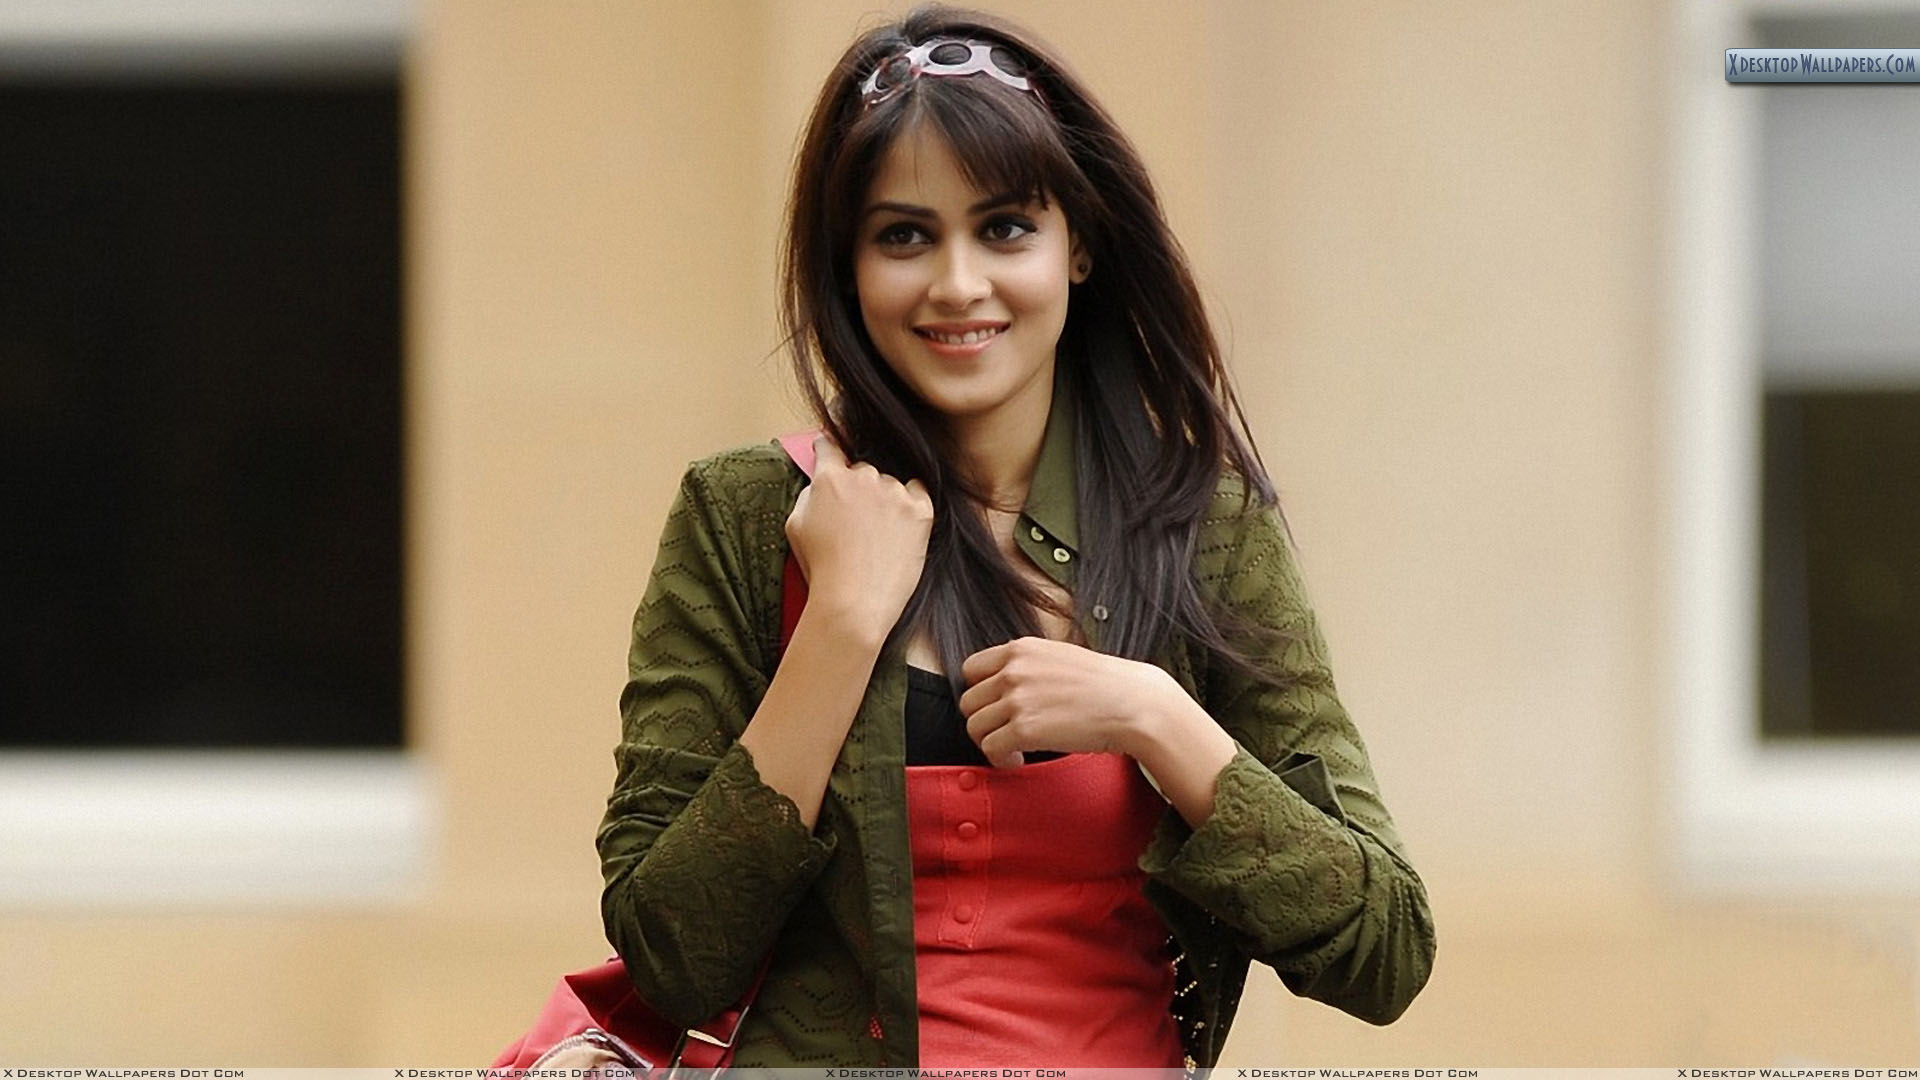 Genelia Dsouza Wallpapers High Resolution And Quality Download